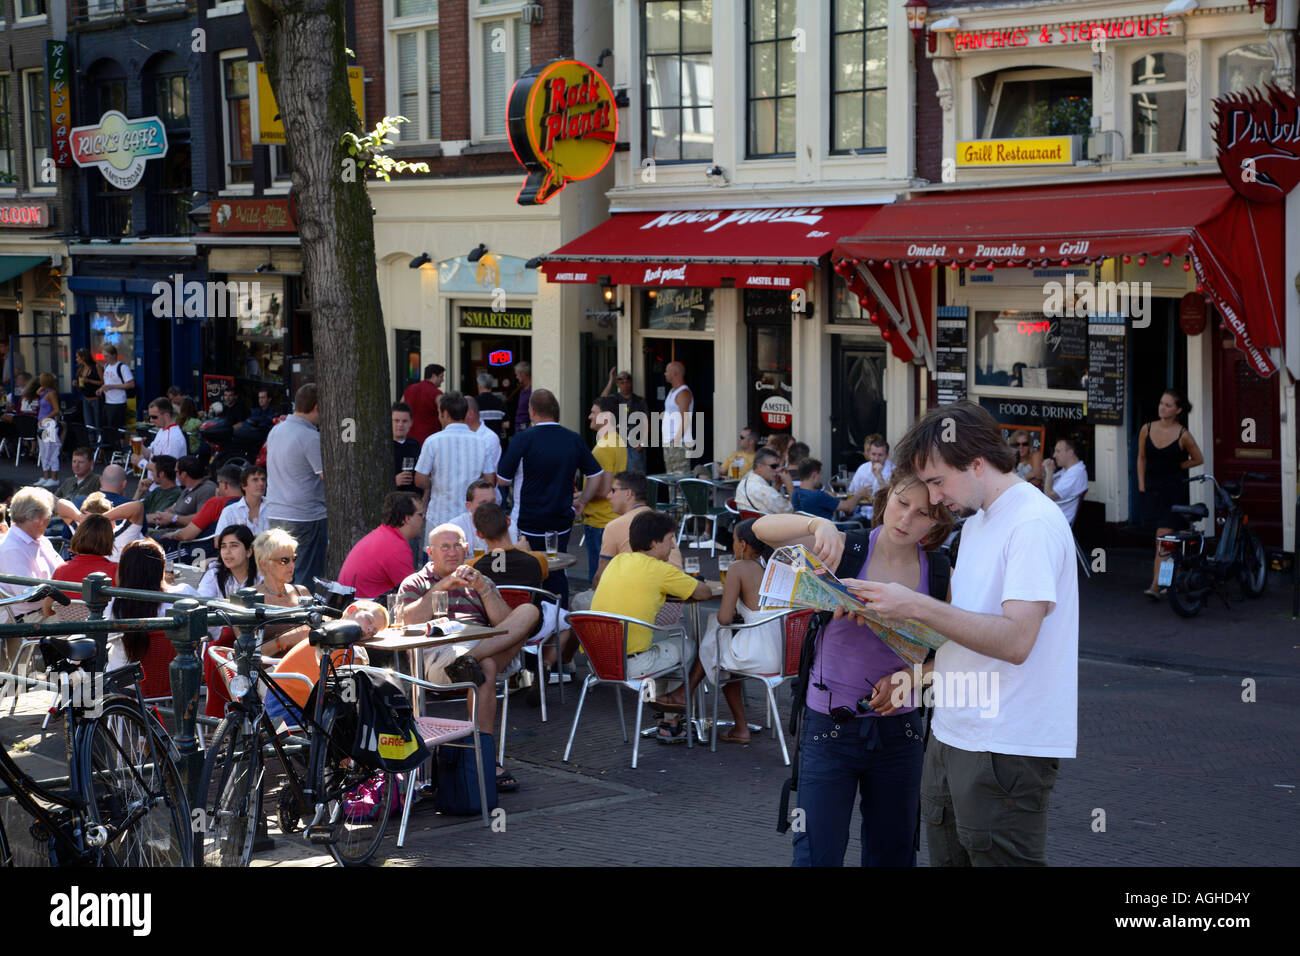 A street cafe and tourists with a city map, Amsterdam, Netherlands - Stock Image